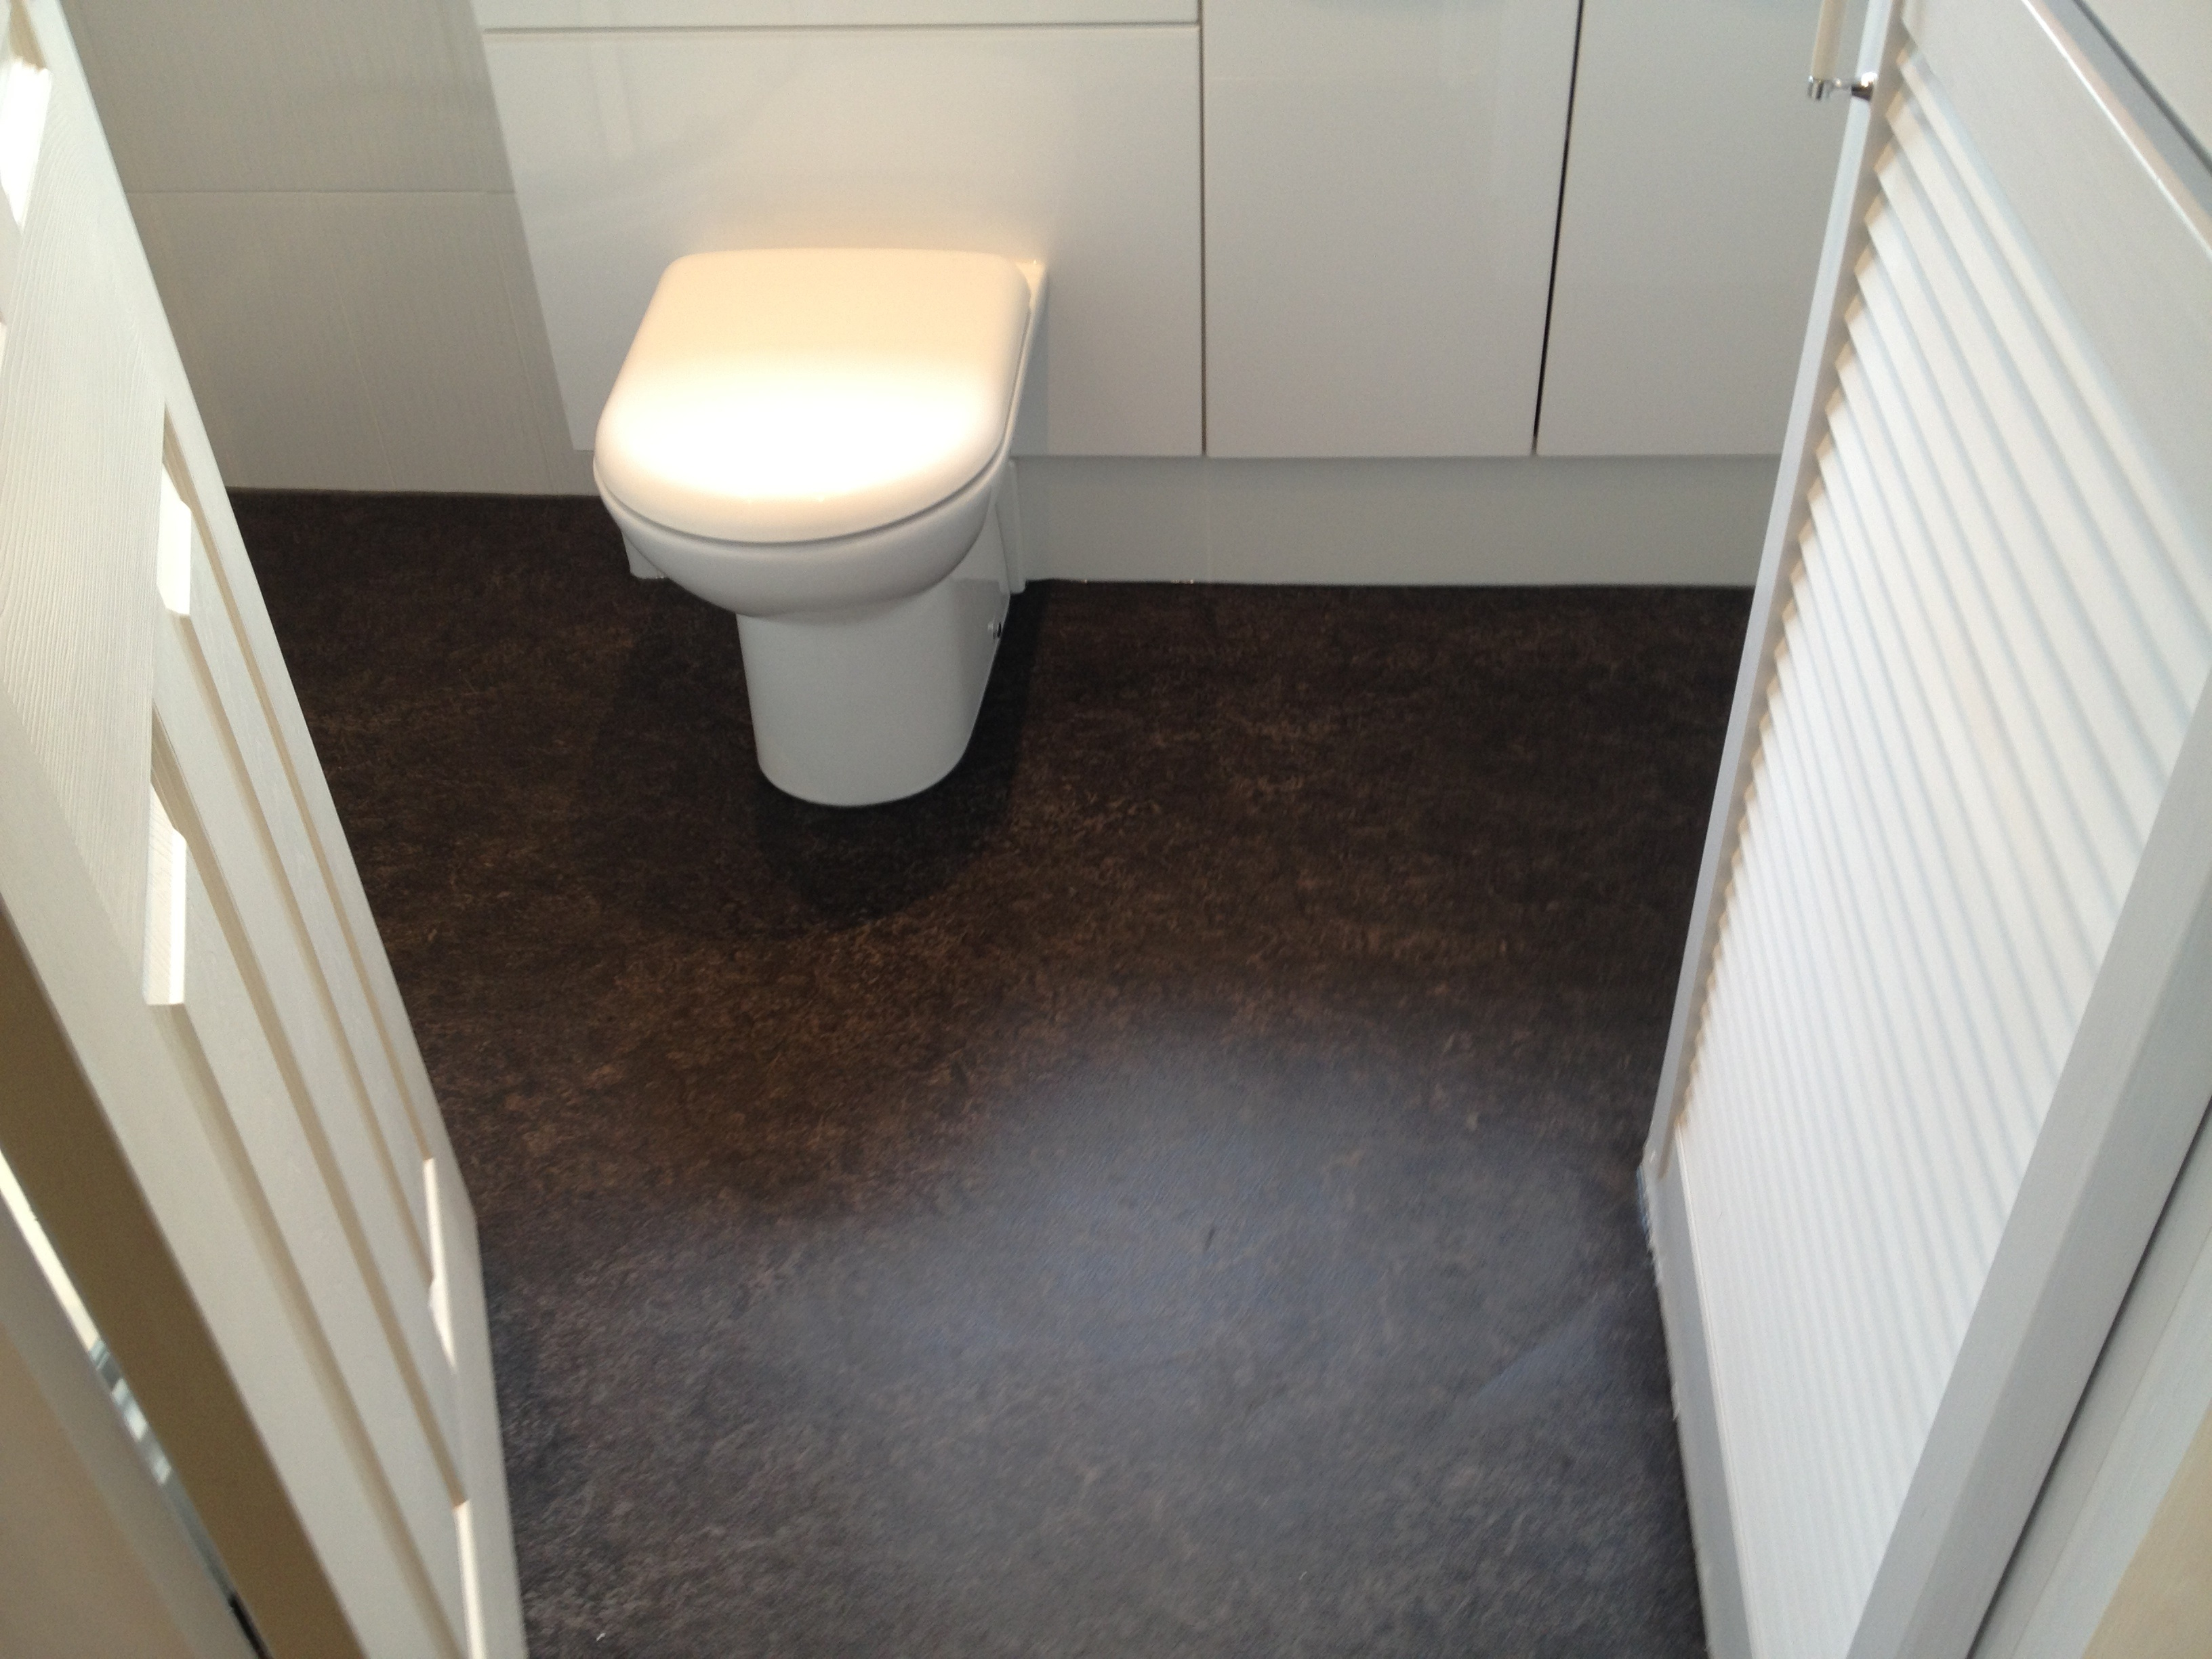 Glamorous Modern Style Bathroom Vinyl Flooring Vinyl Bathroom Flooring Image 4 within Lovely Vinyl Flooring In Bathroom